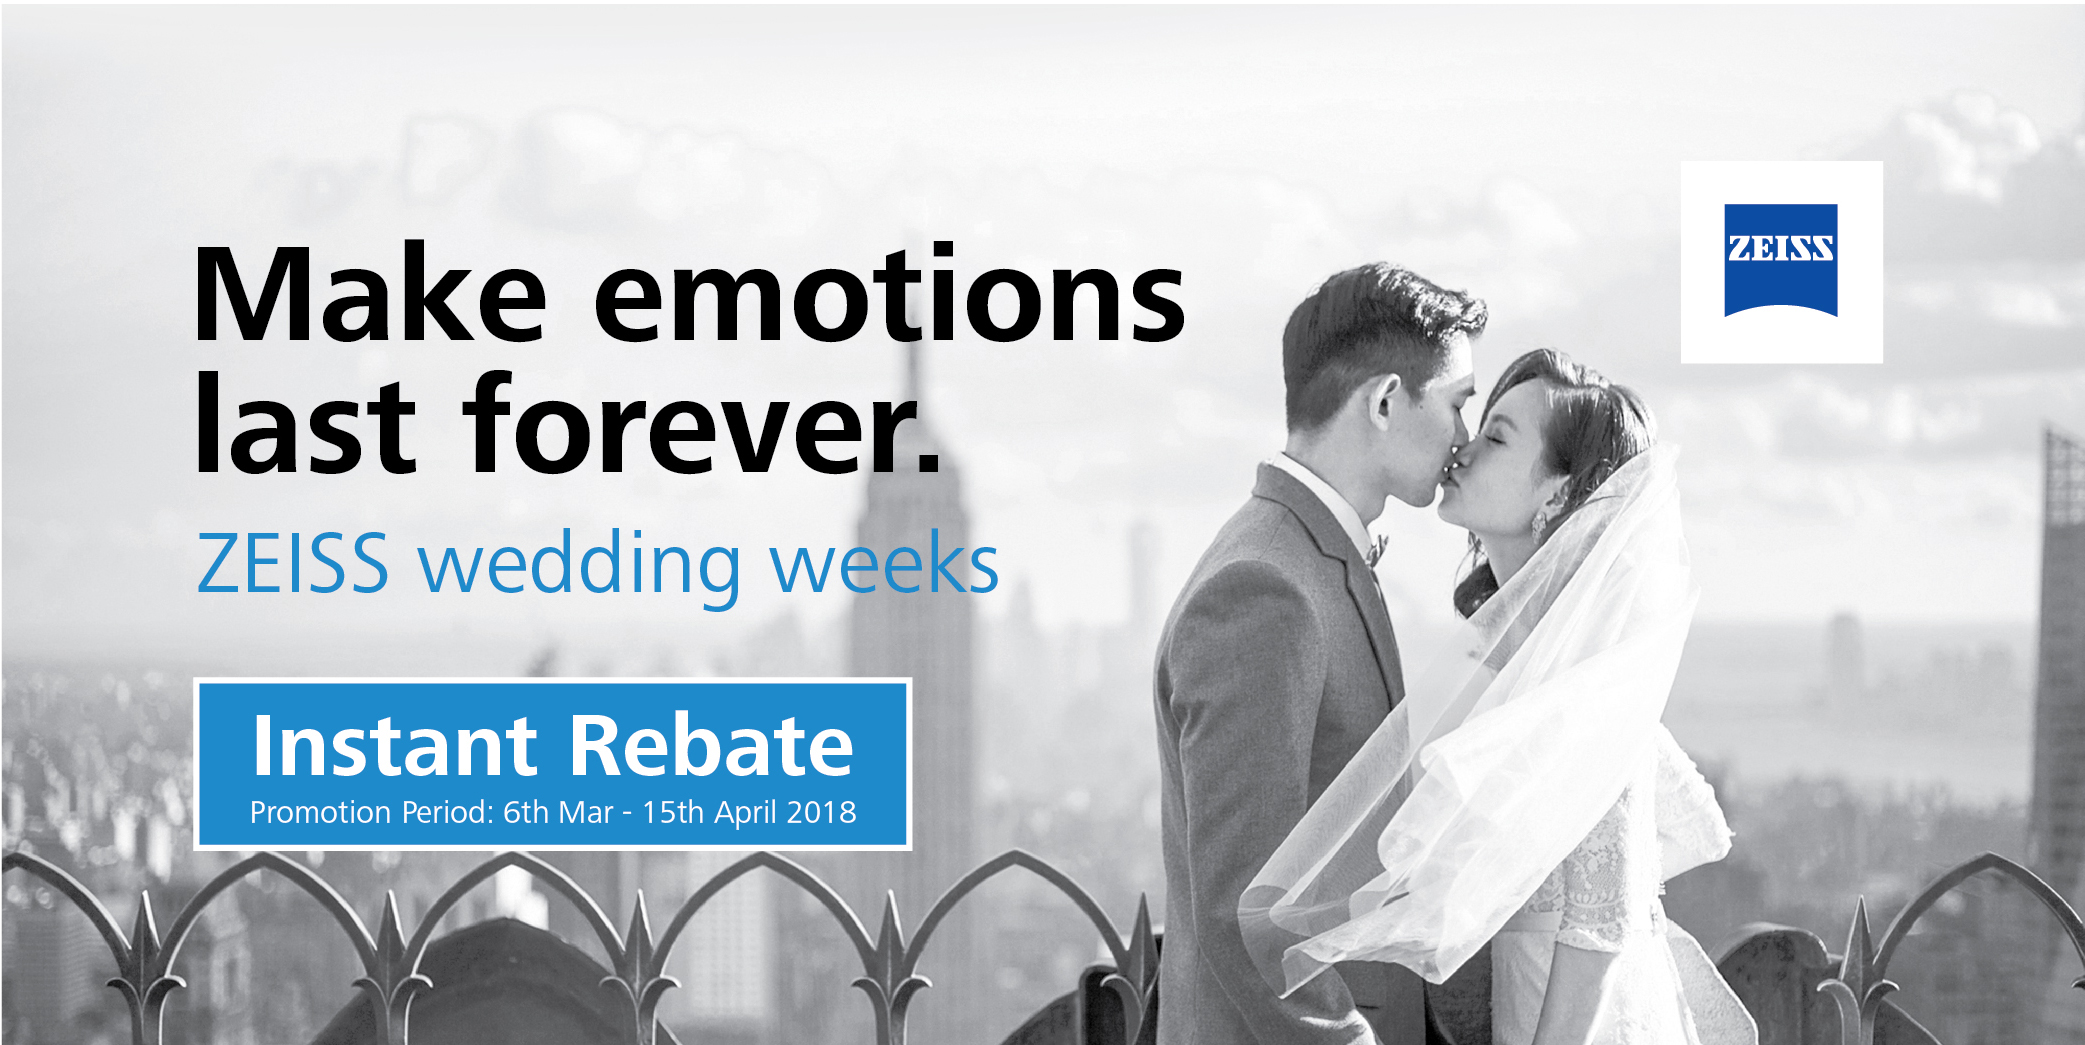 Zeiss Wedding Week Promo